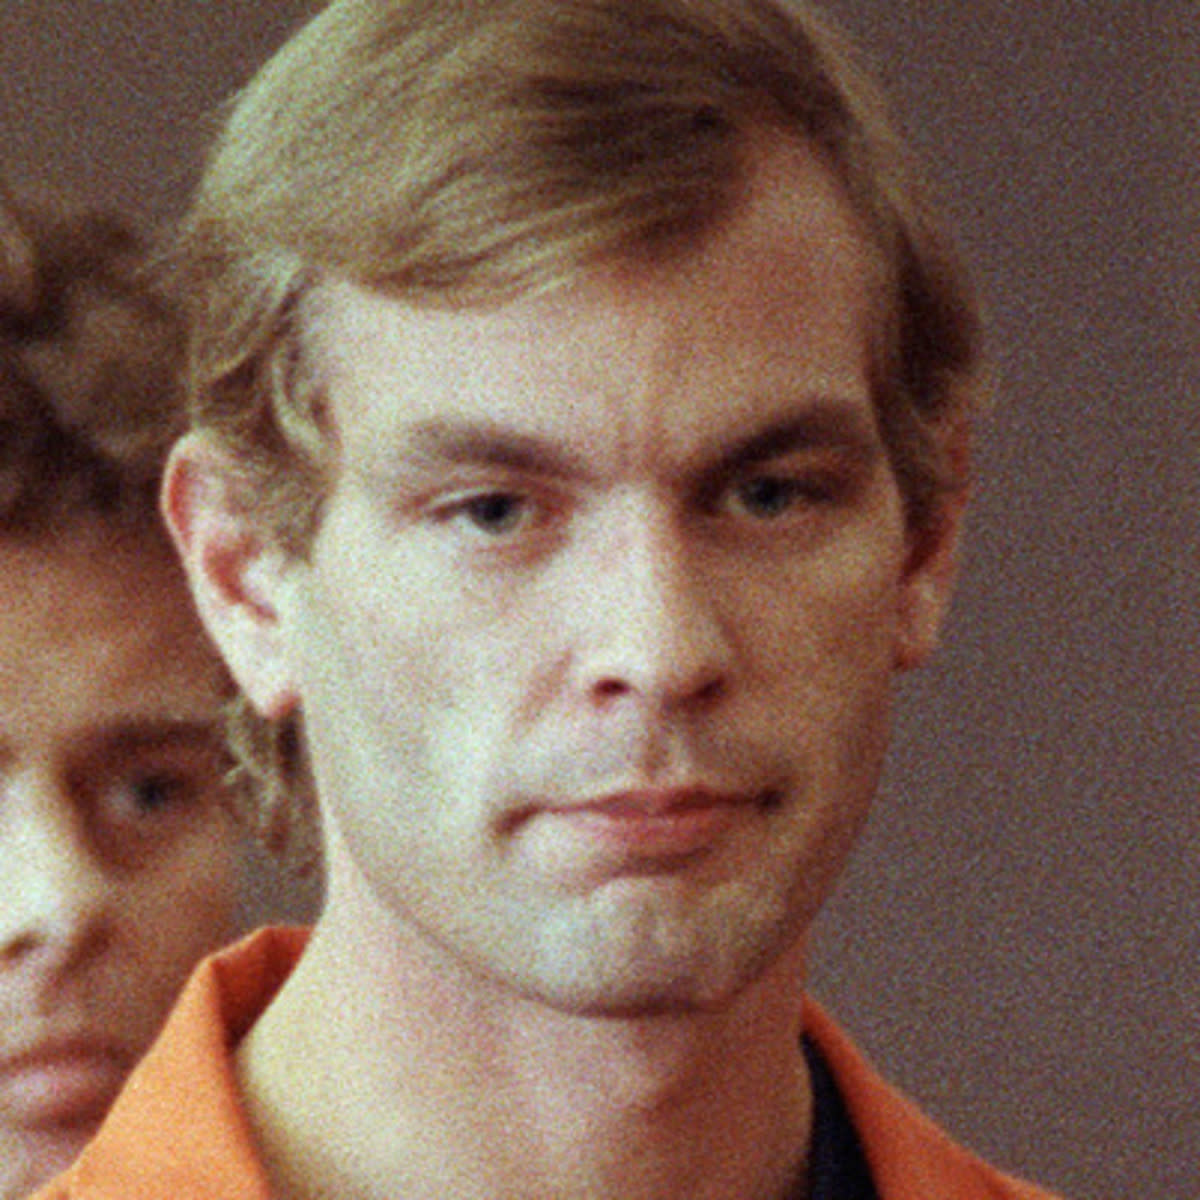 Nature Versus Nurture: The Role of Genetic Influence on the Serial Killer